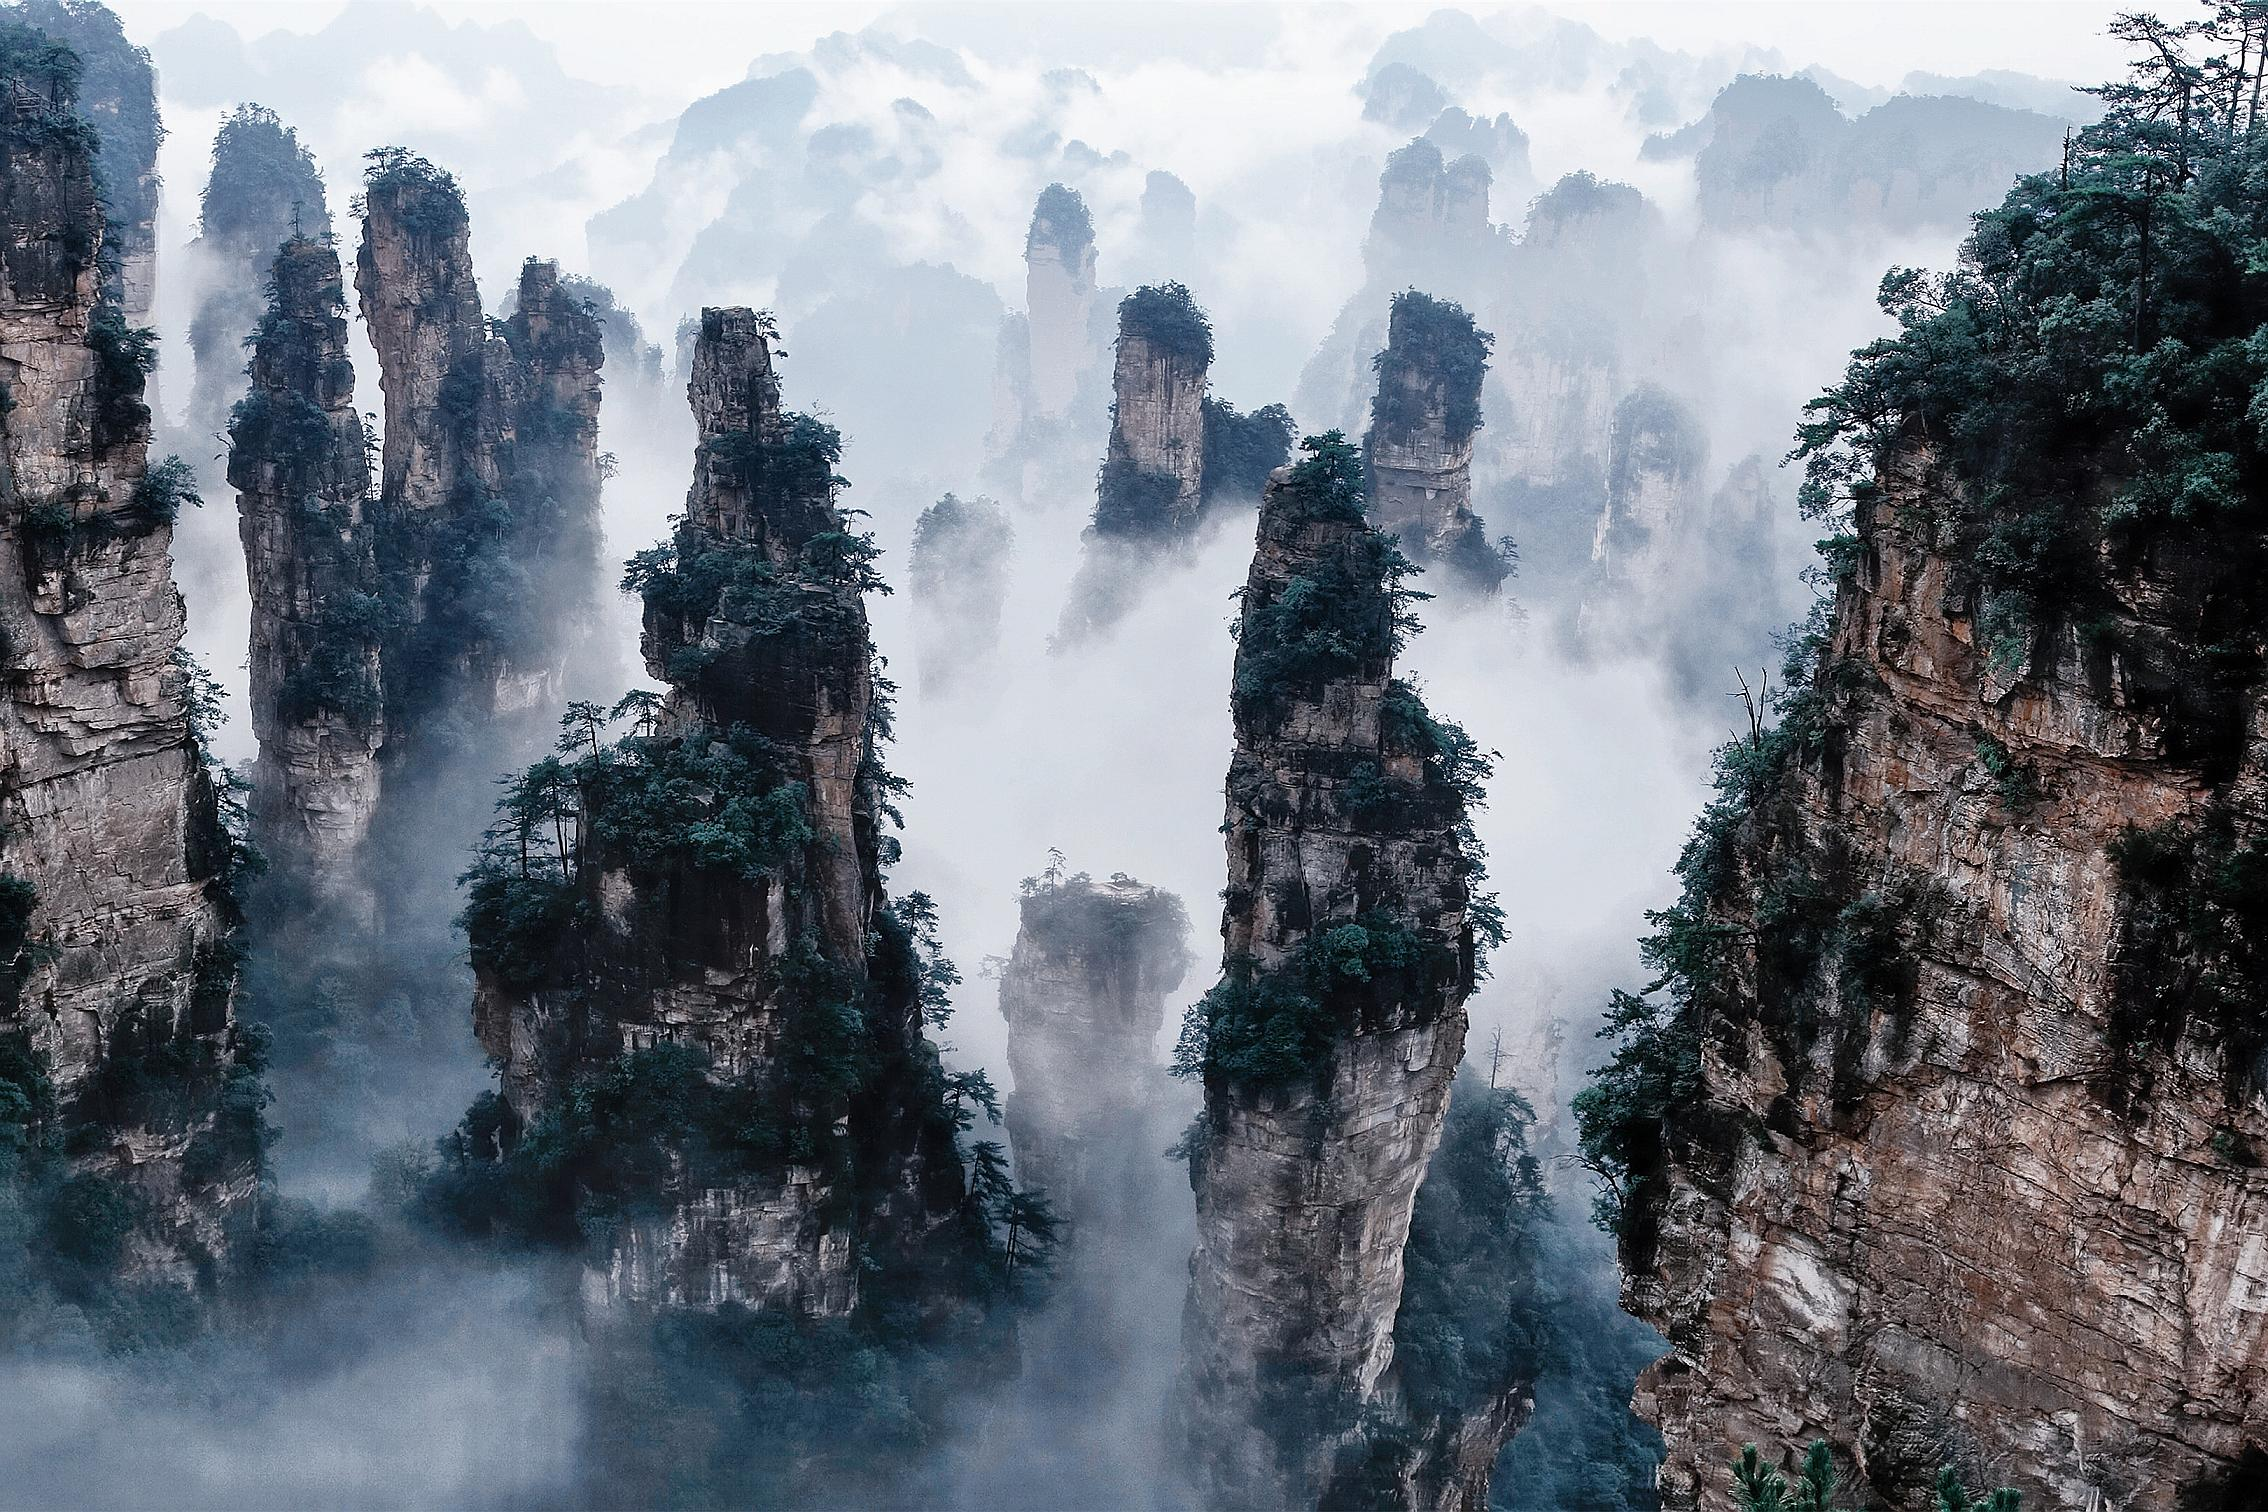 Zhangjiajie National Park - Hallelujah Mountains